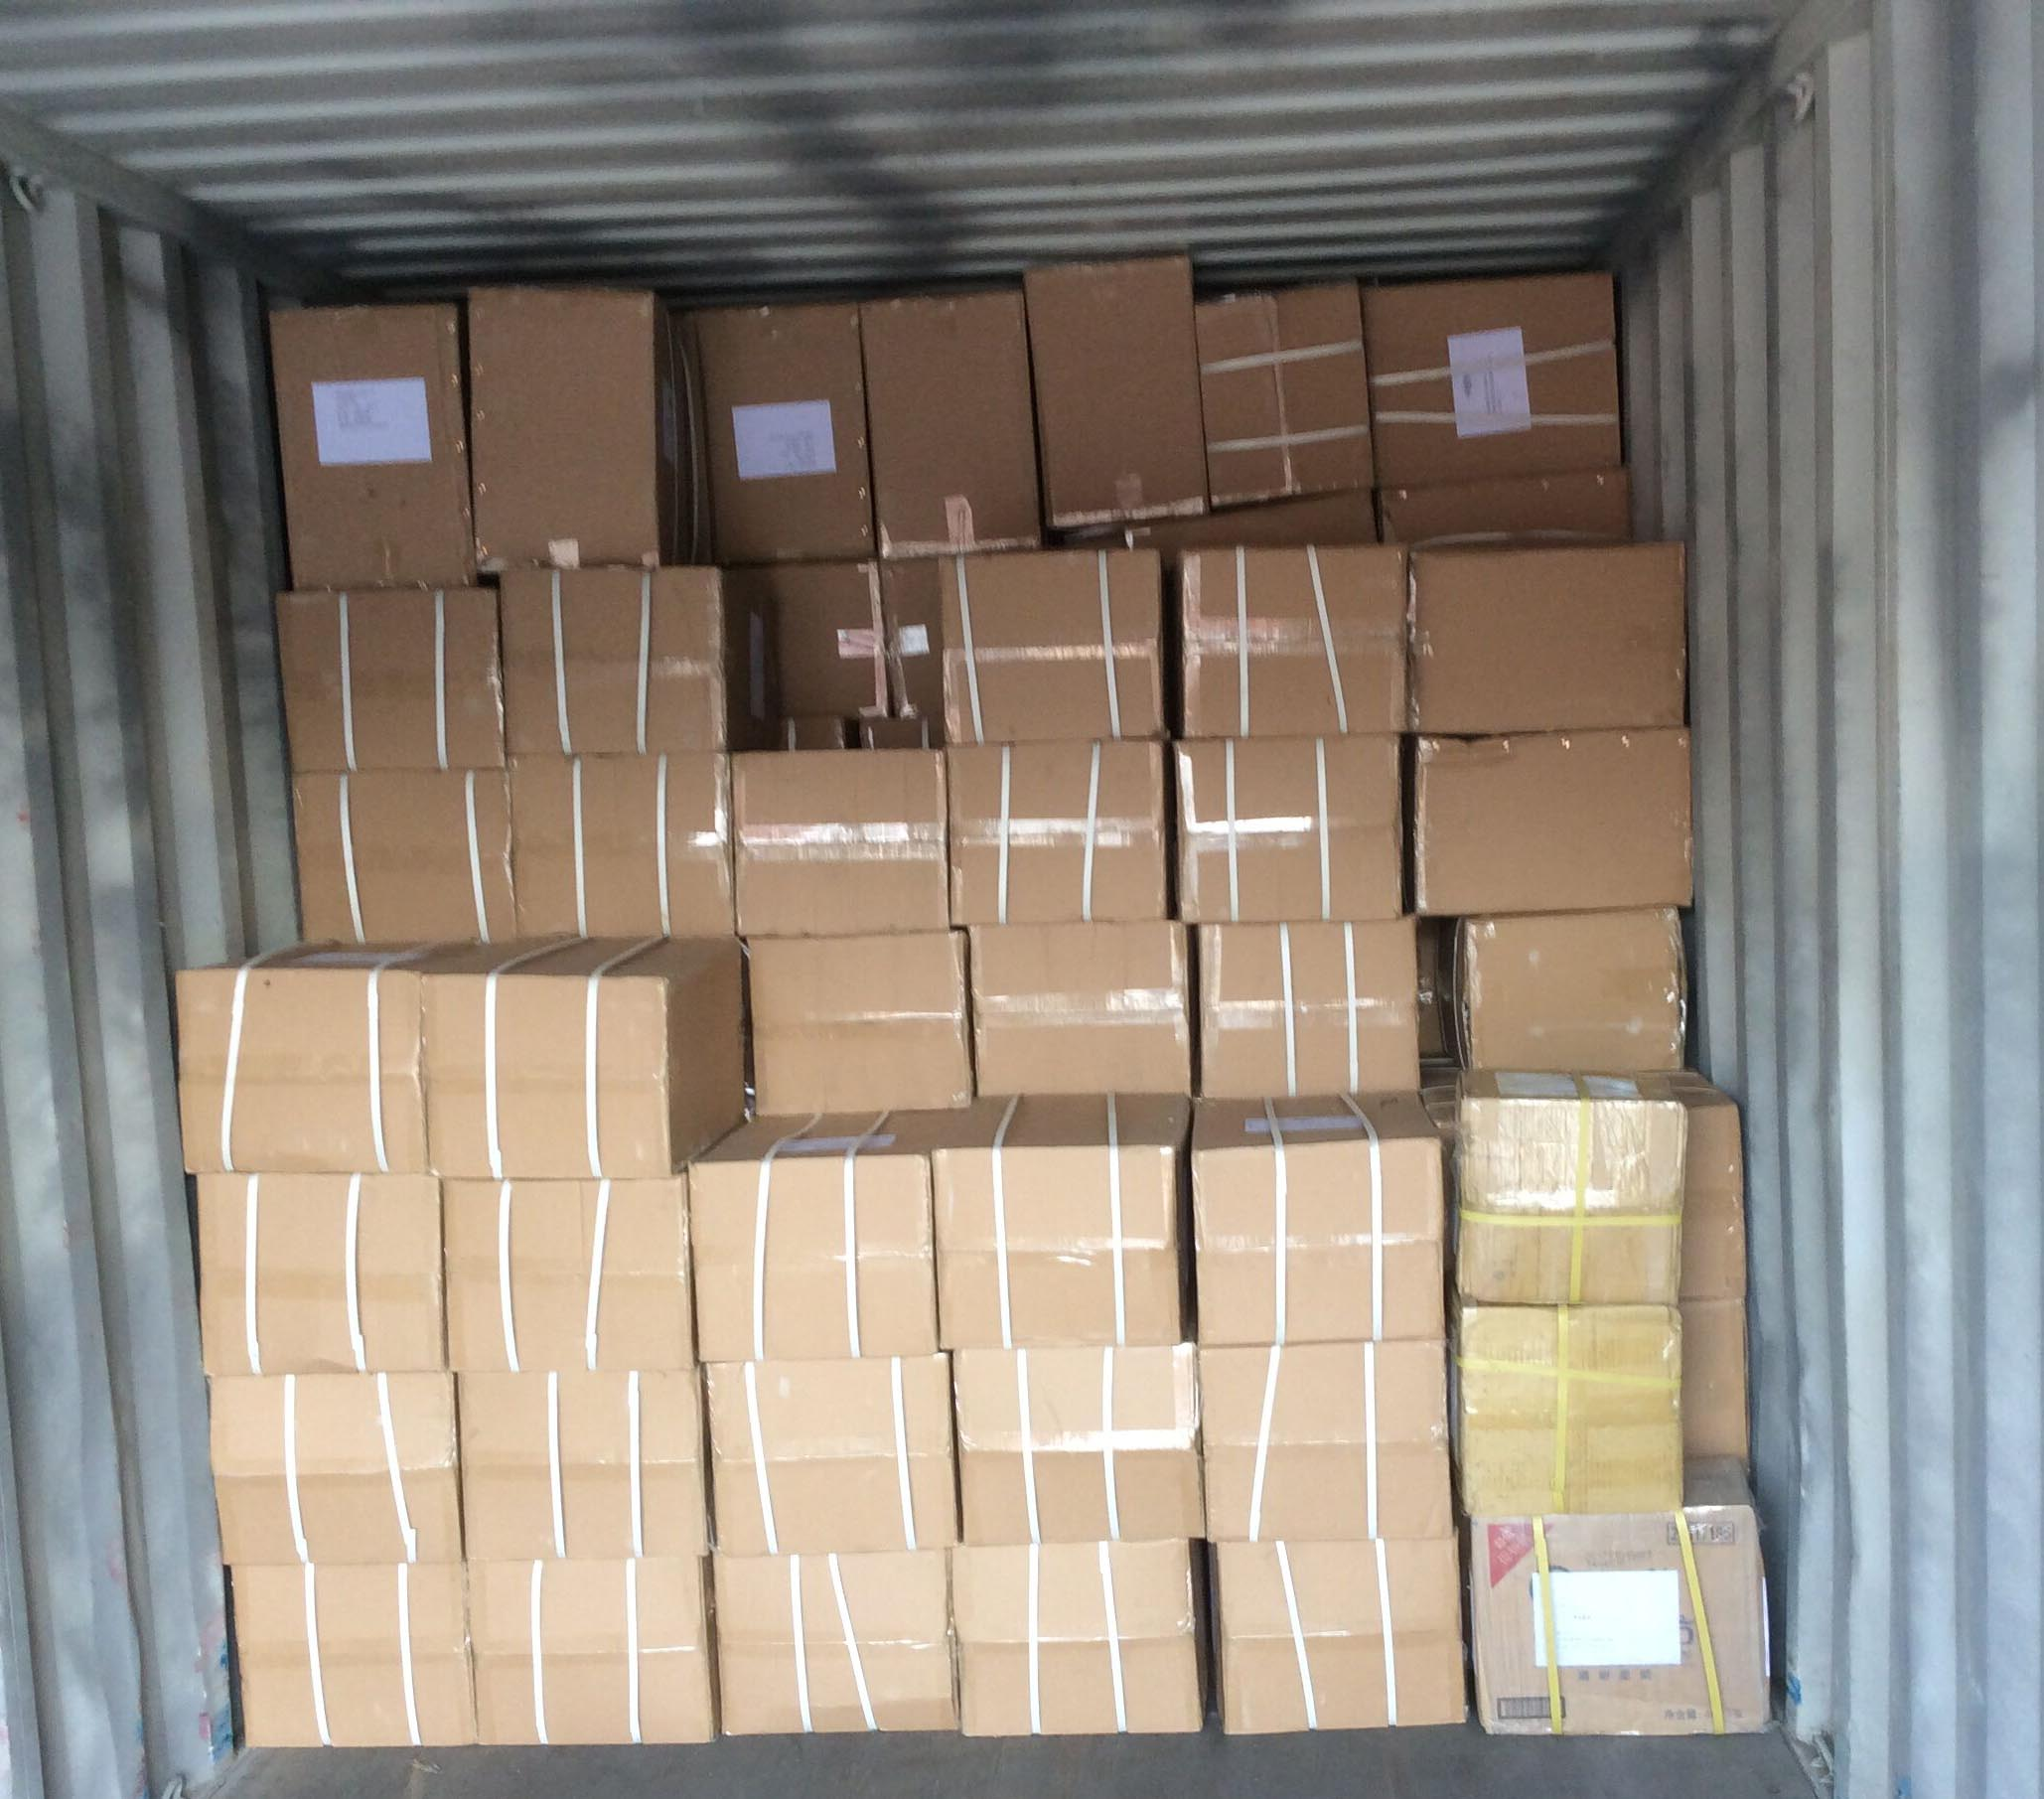 Shipment pictures